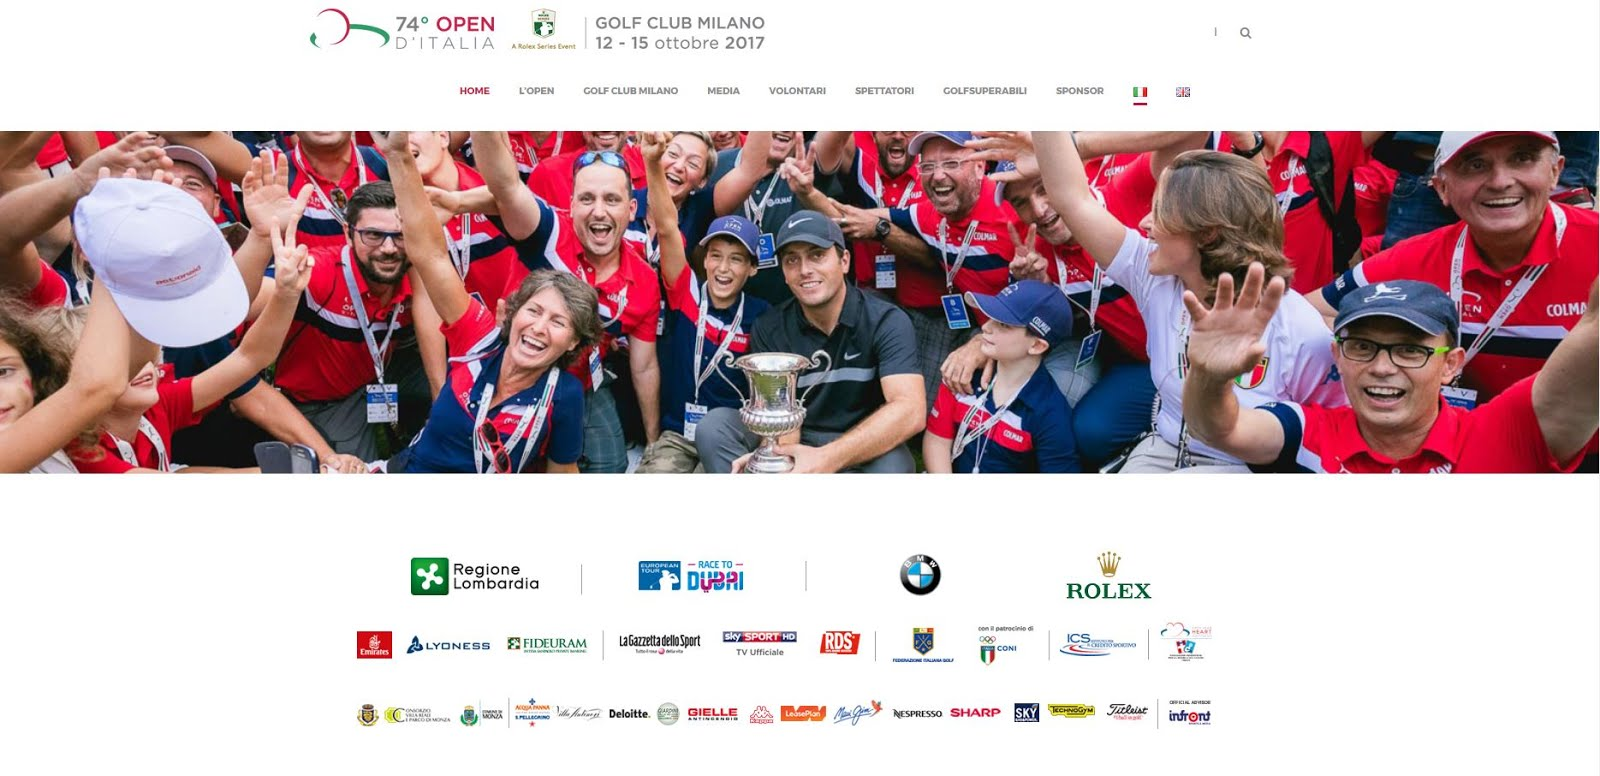 74° Open d'Italia - Golf Club Milano, Monza